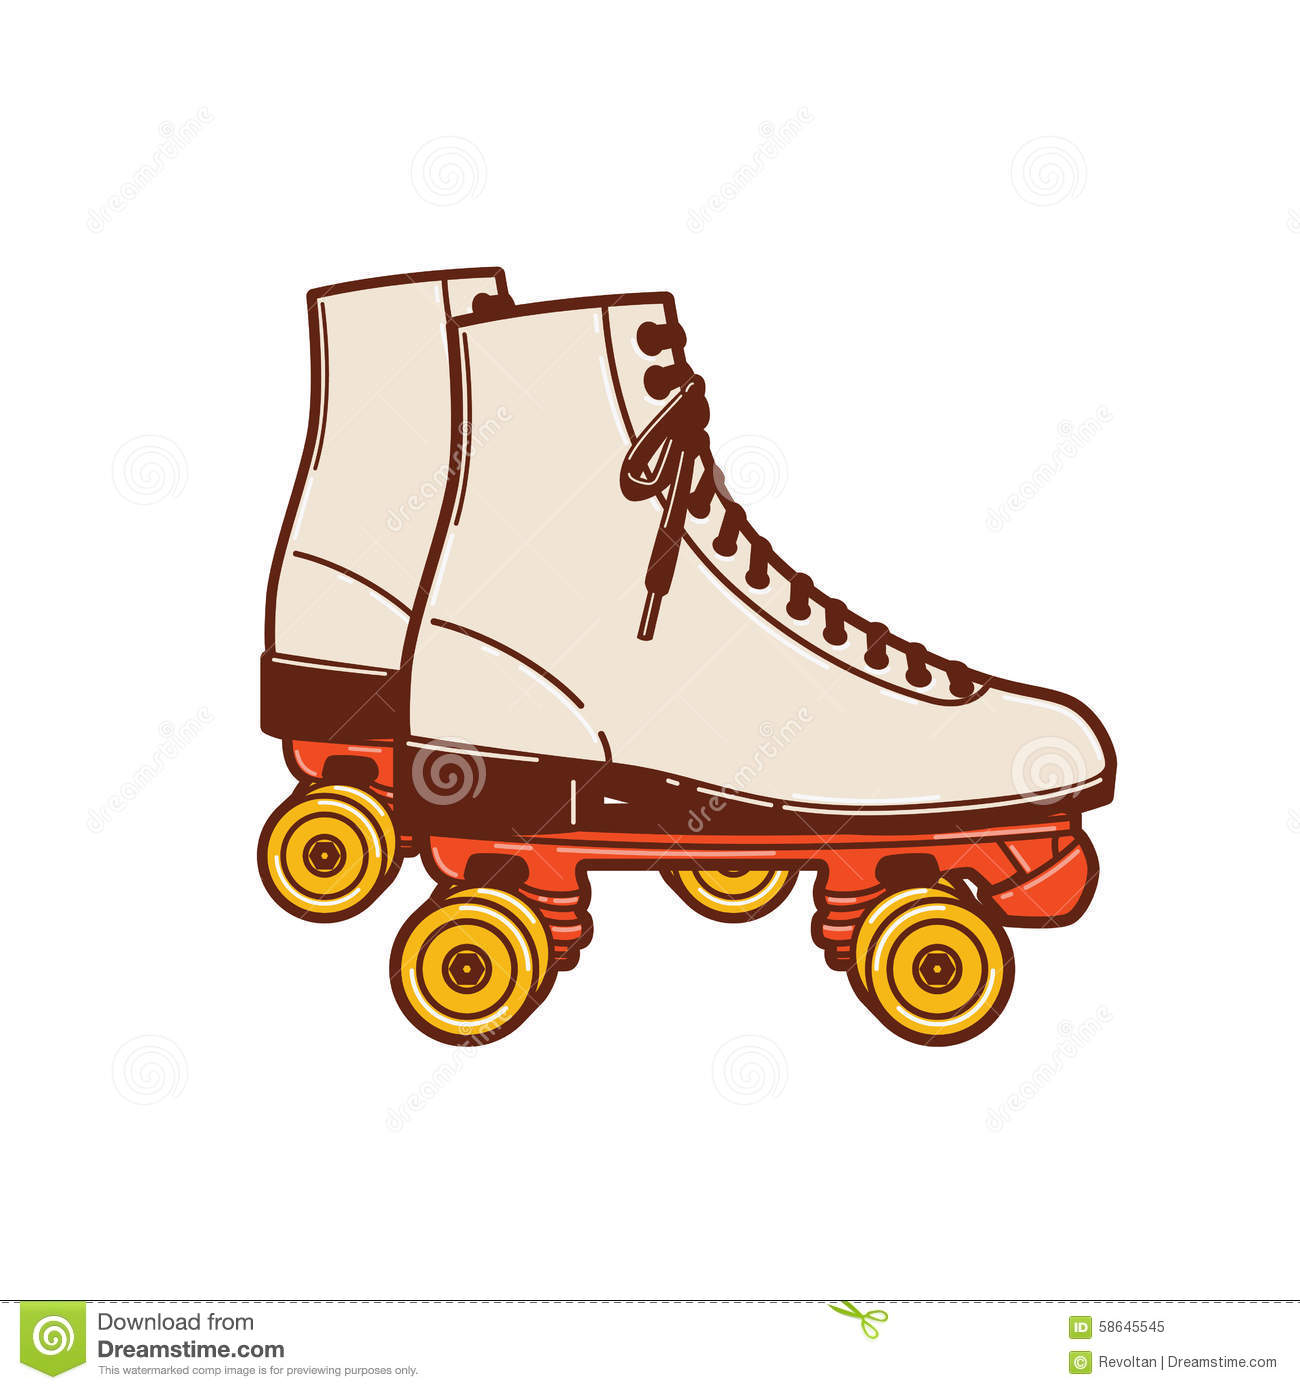 a roller skate classic commonly used and popular in the Roller Derby Skates Roller Derby Skates